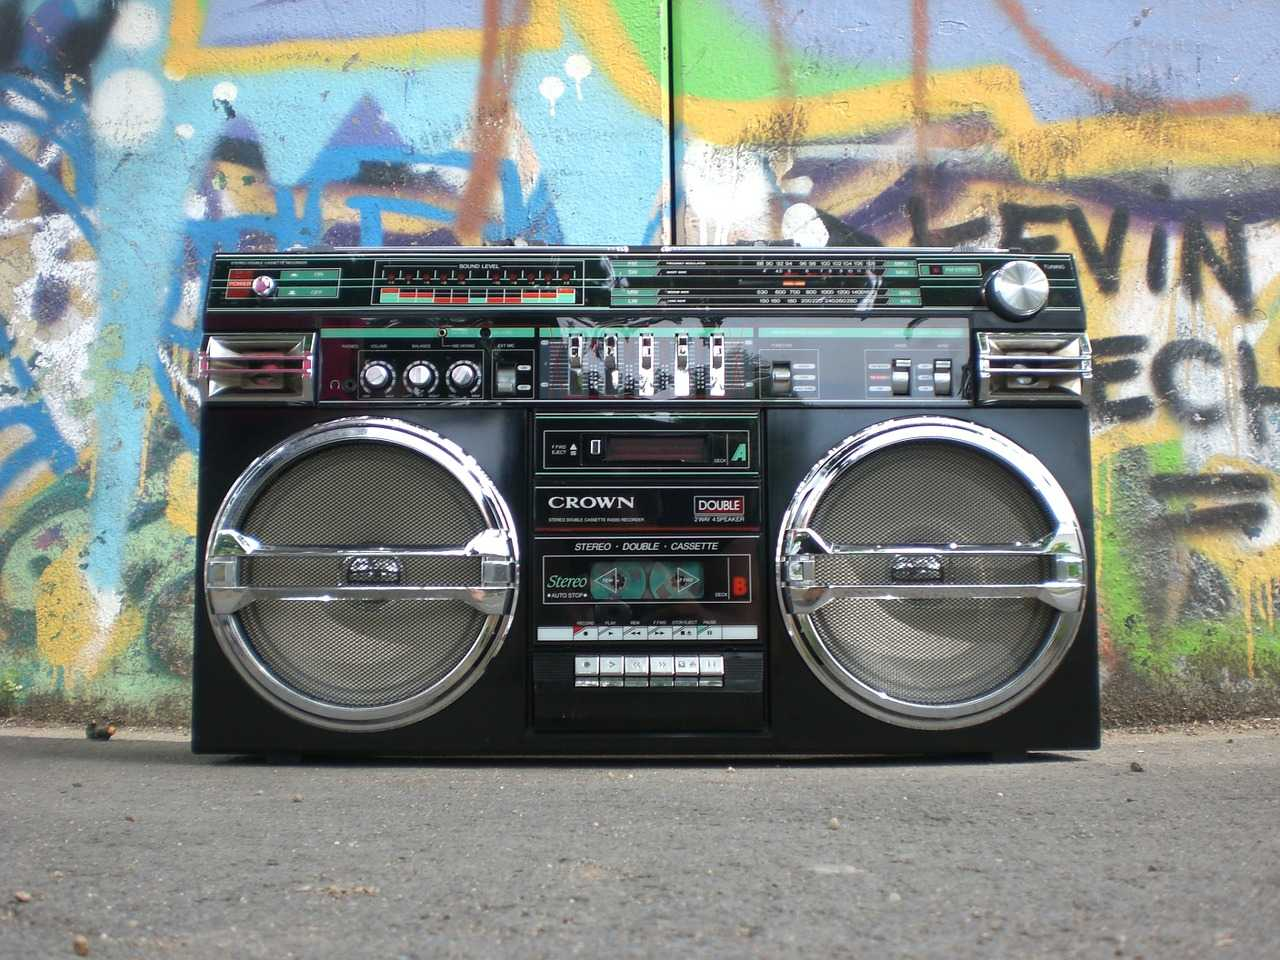 Top 5 best boombox CD players to buy in 2020 cover image